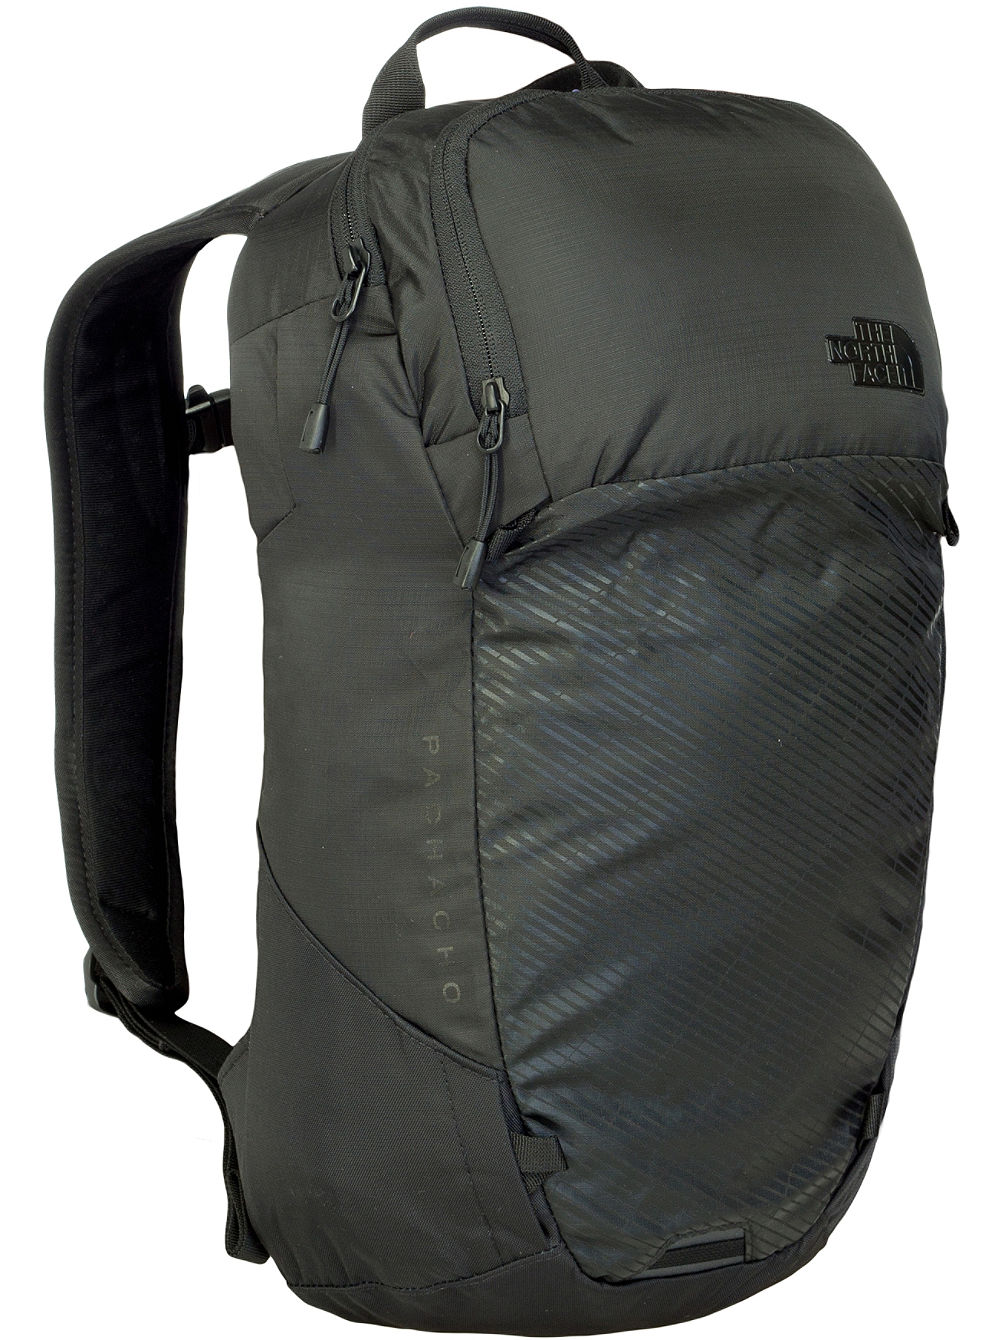 Kup THE NORTH FACE Pachacho Backpack online na blue-tomato.com 2851099fab